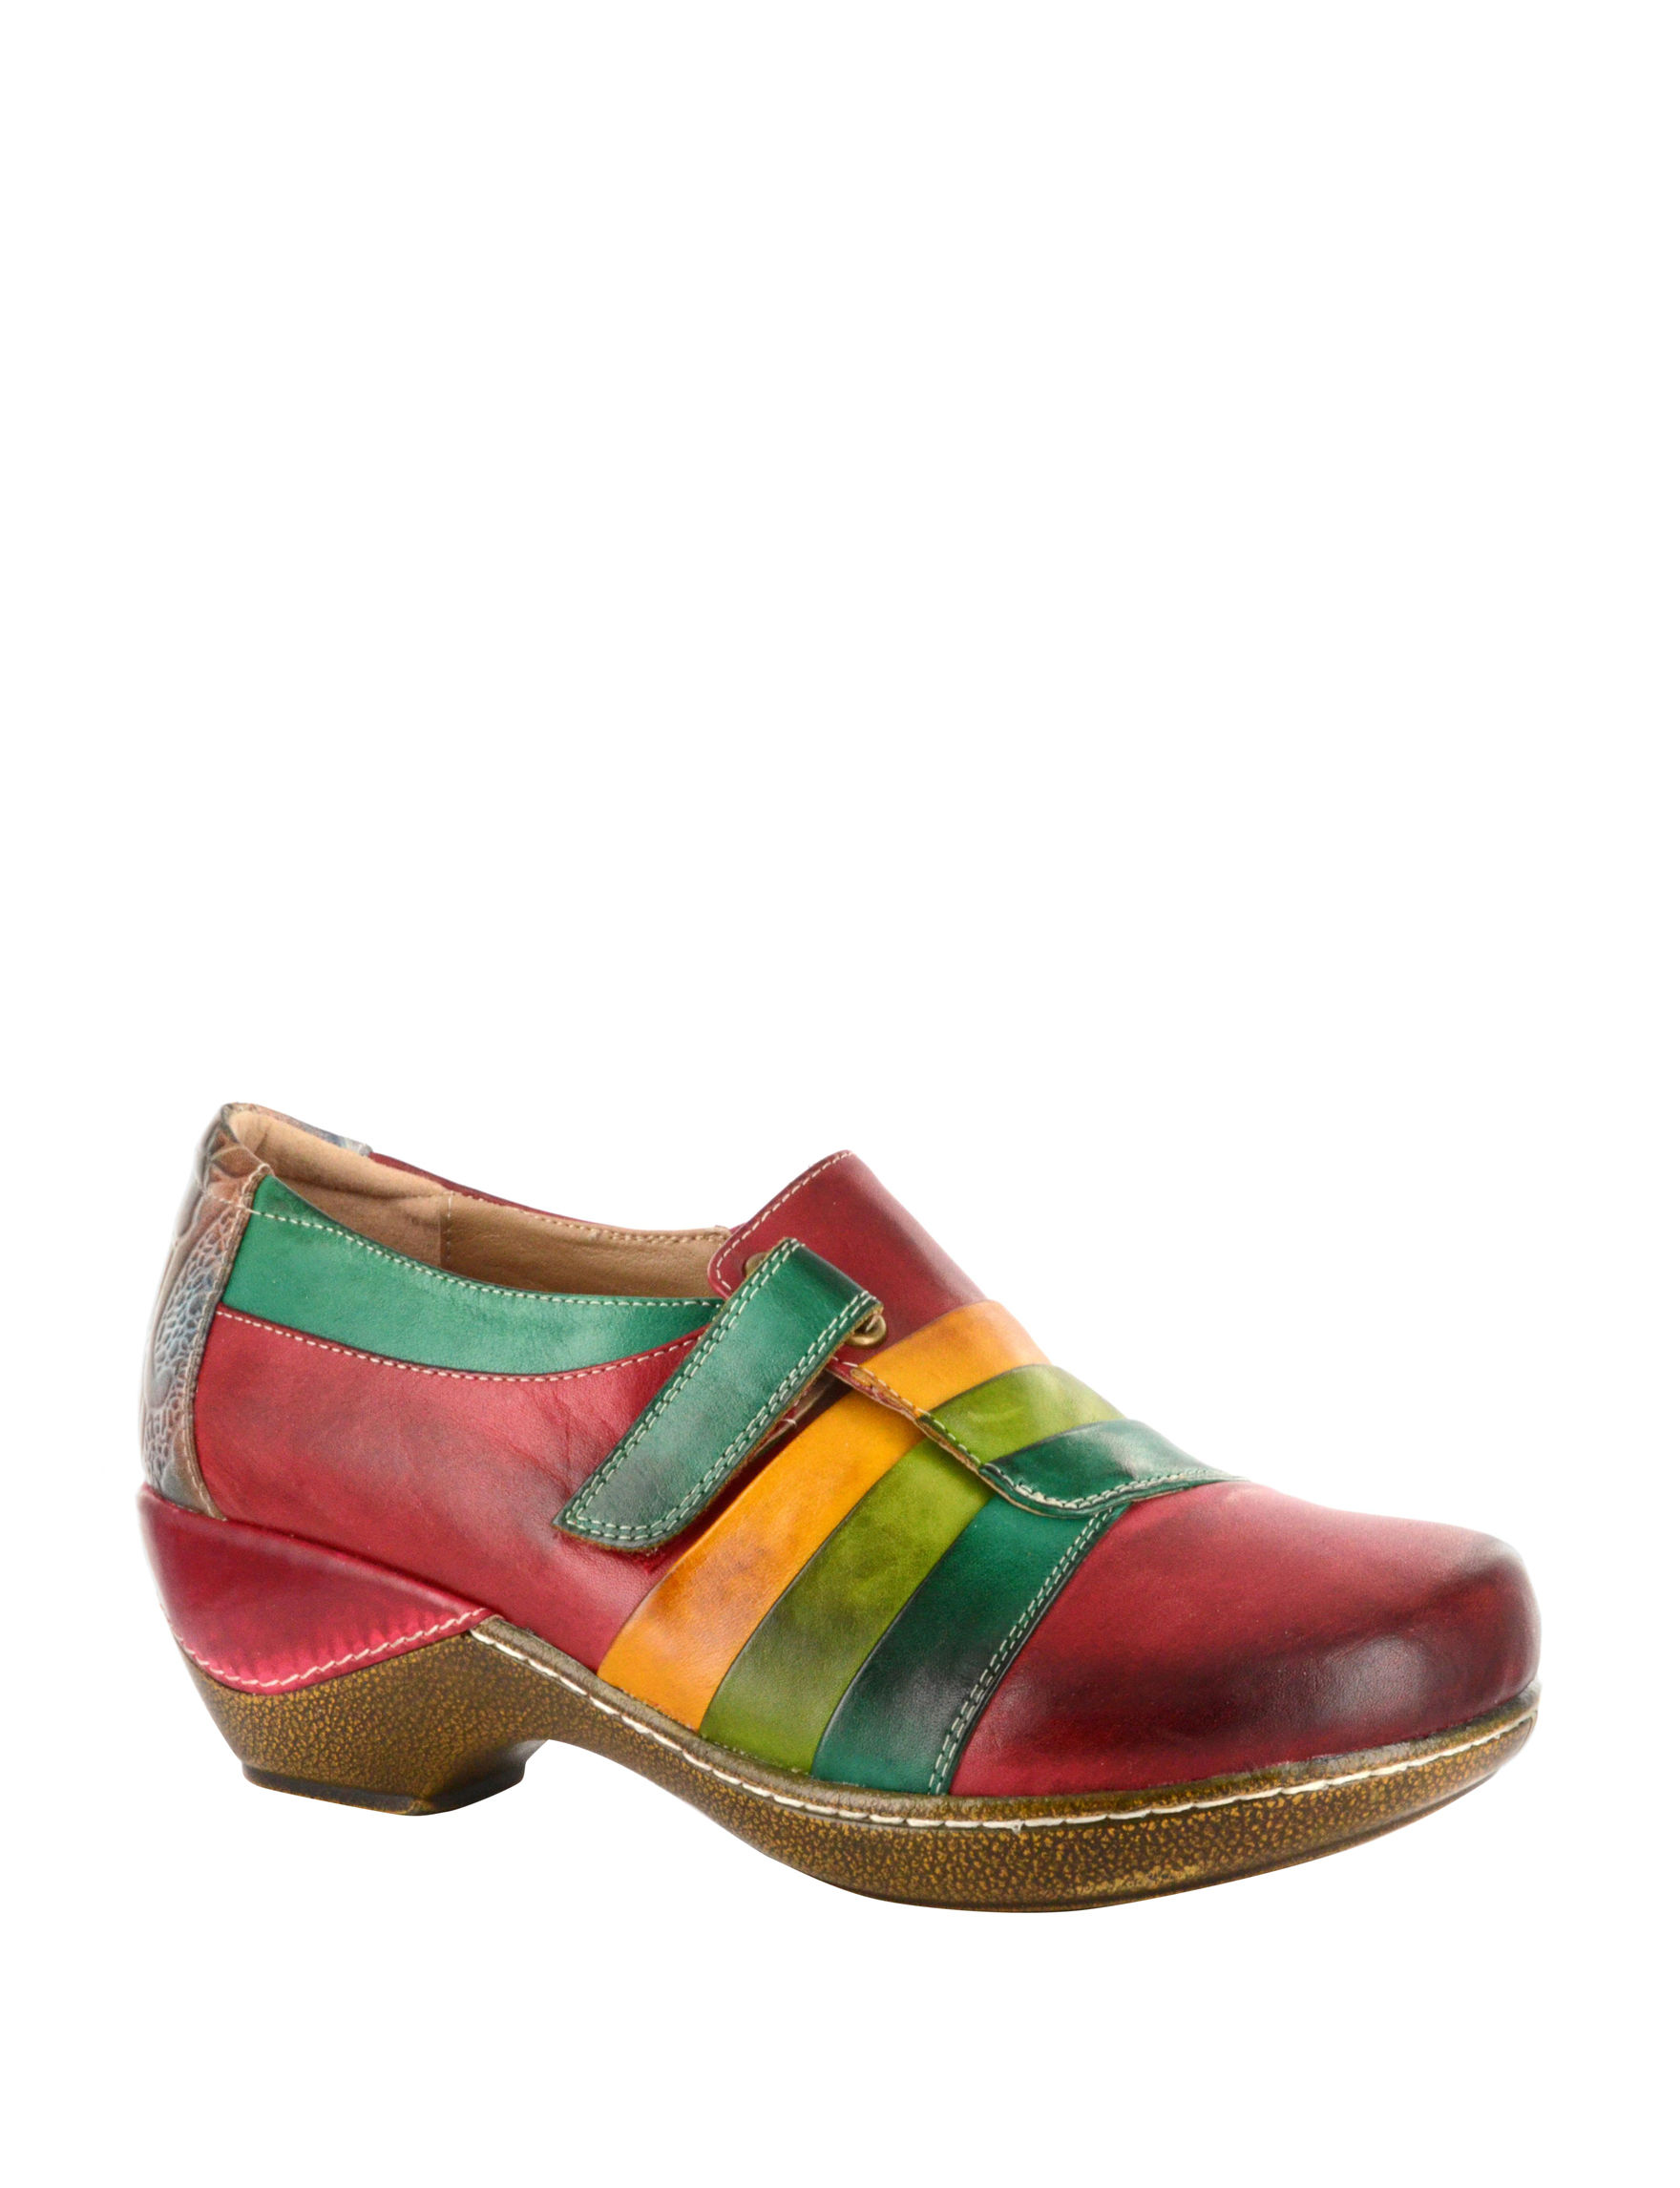 Corkys Green / Red Clogs